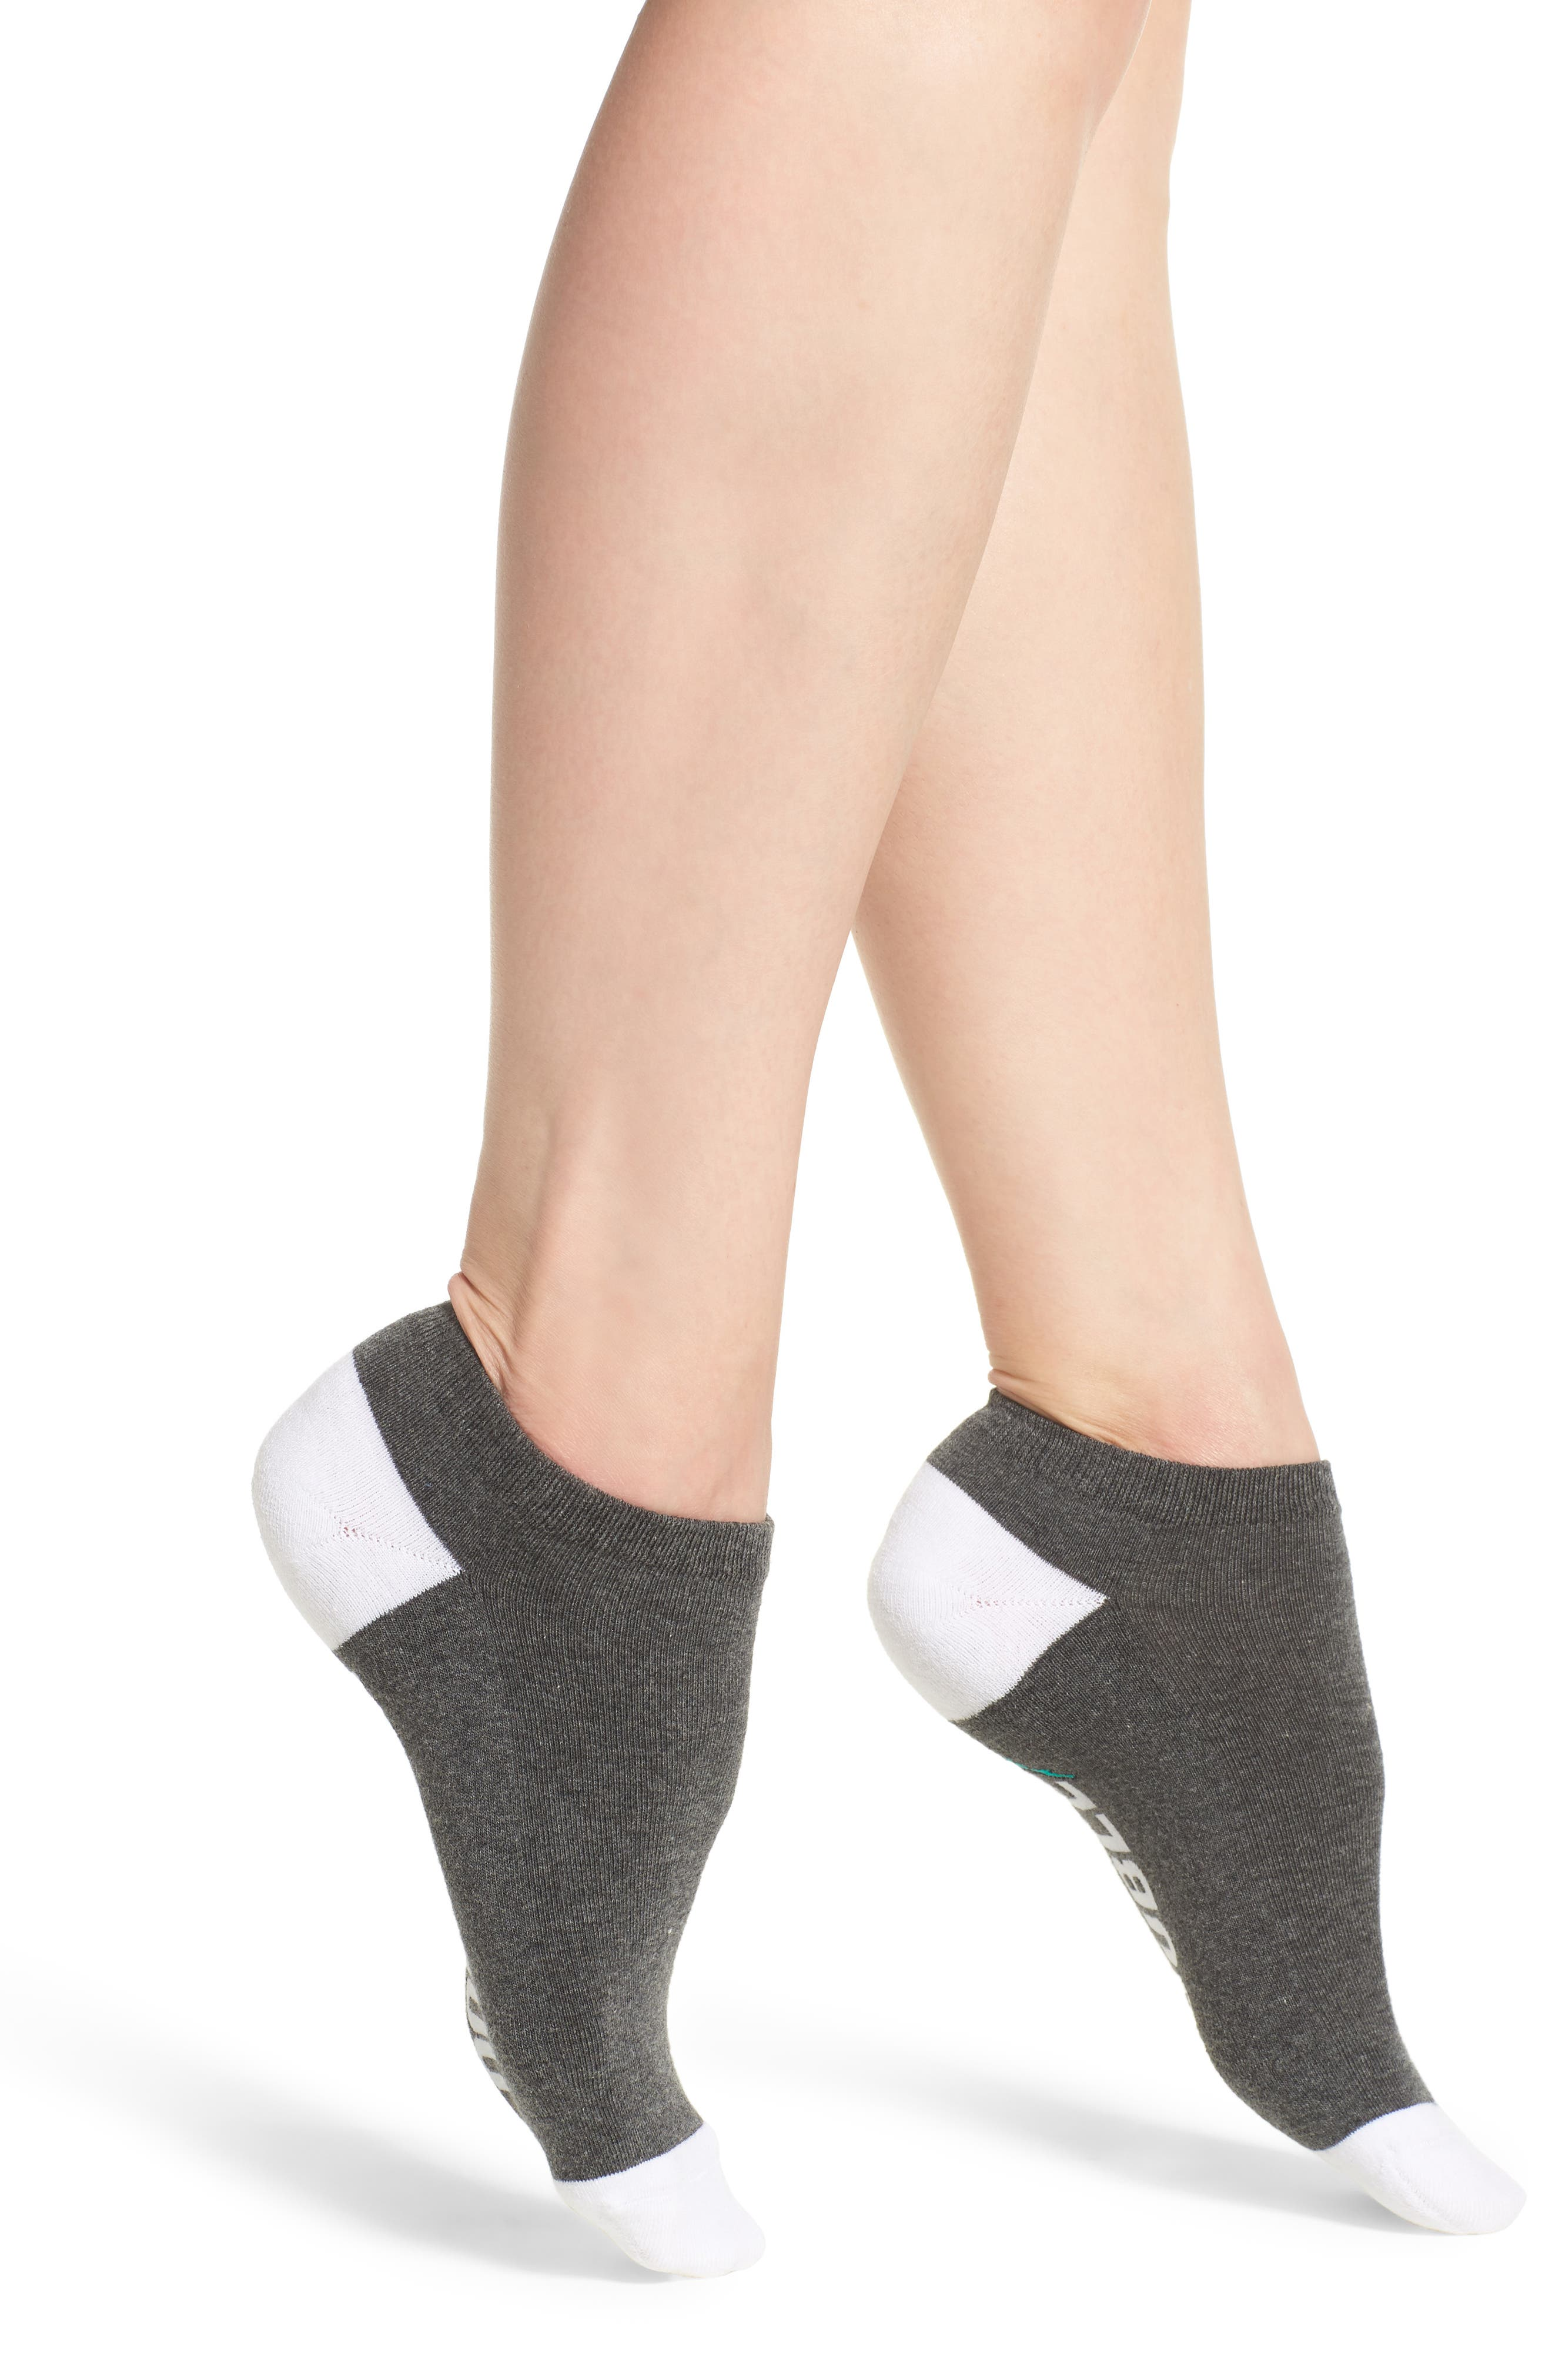 Lookin' For Trouble Low-Cut Socks,                         Main,                         color, 020